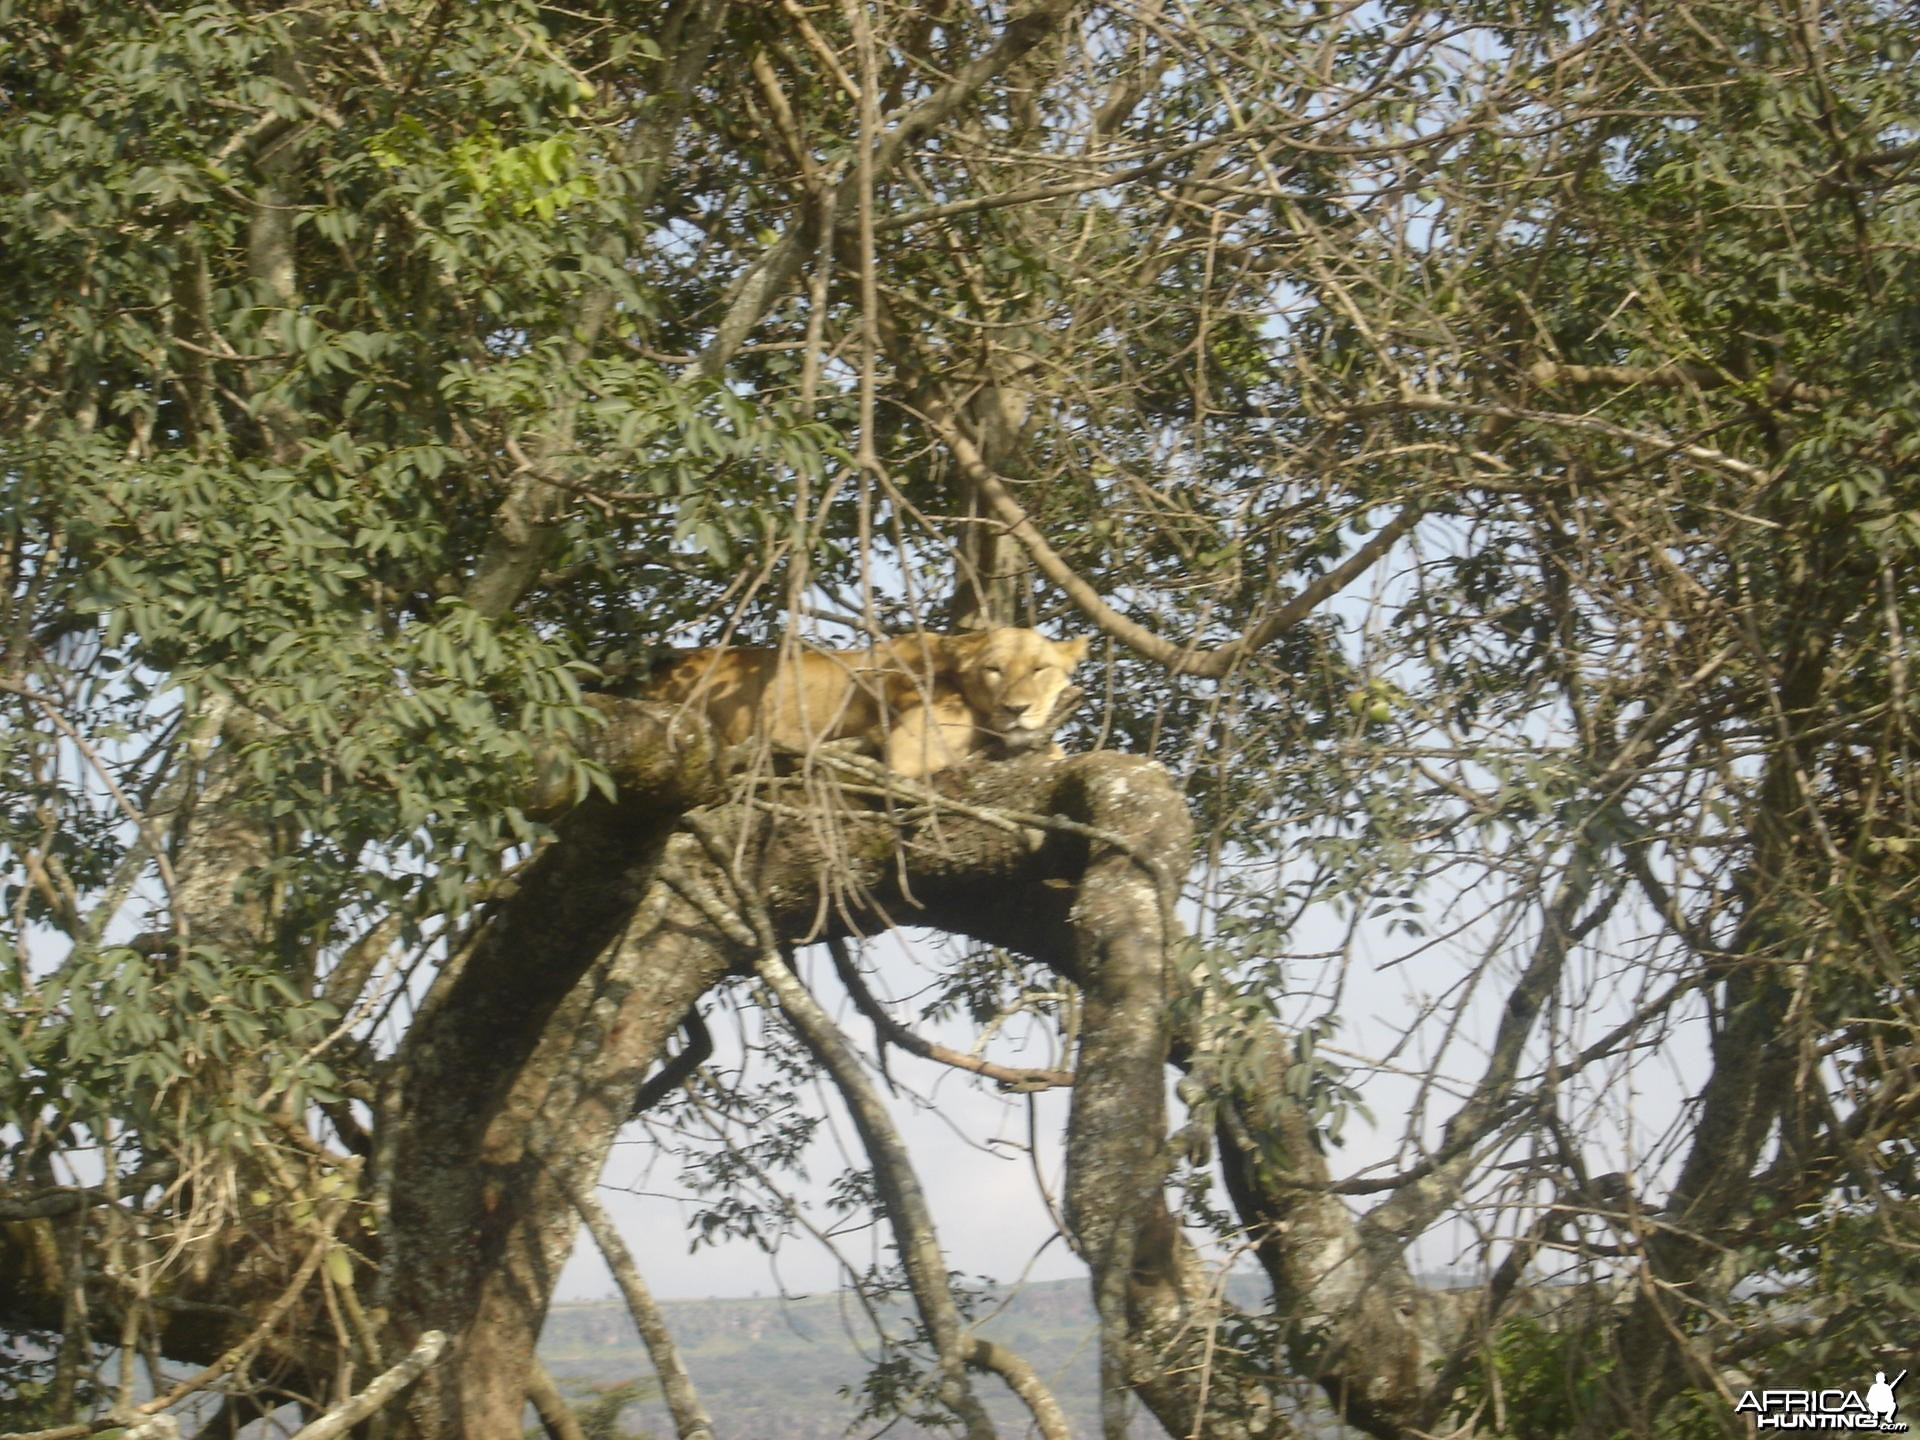 Found this cat resting on my last trip to Kenya